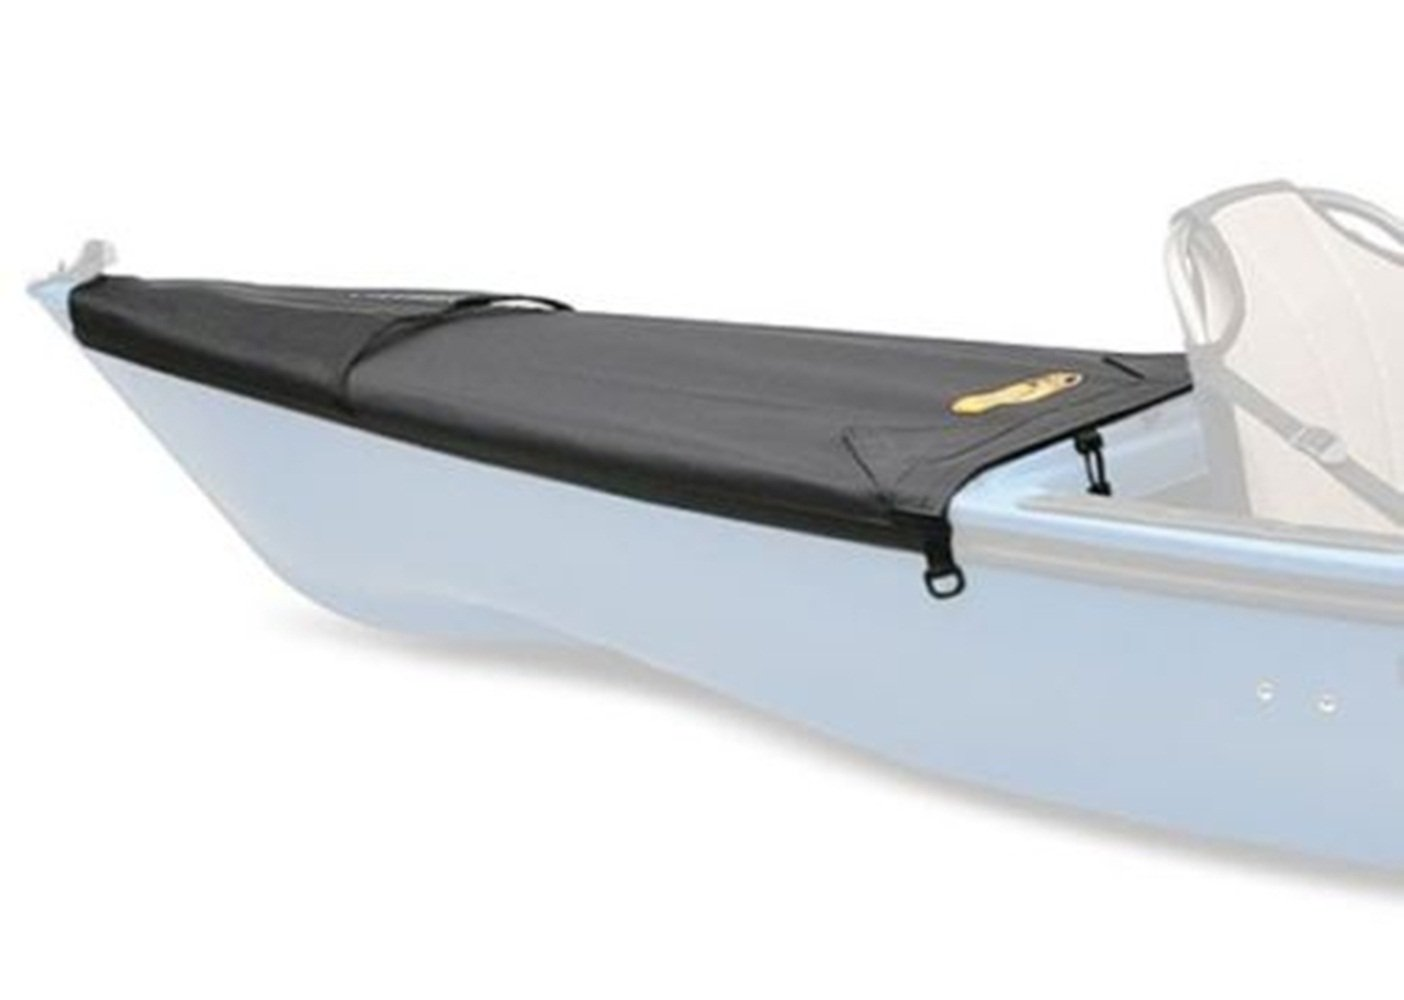 KAYAK NATIVE ULTIMATE 14.5 STERN COVER SPRAY SKIRT FISHING ACCESSORIES